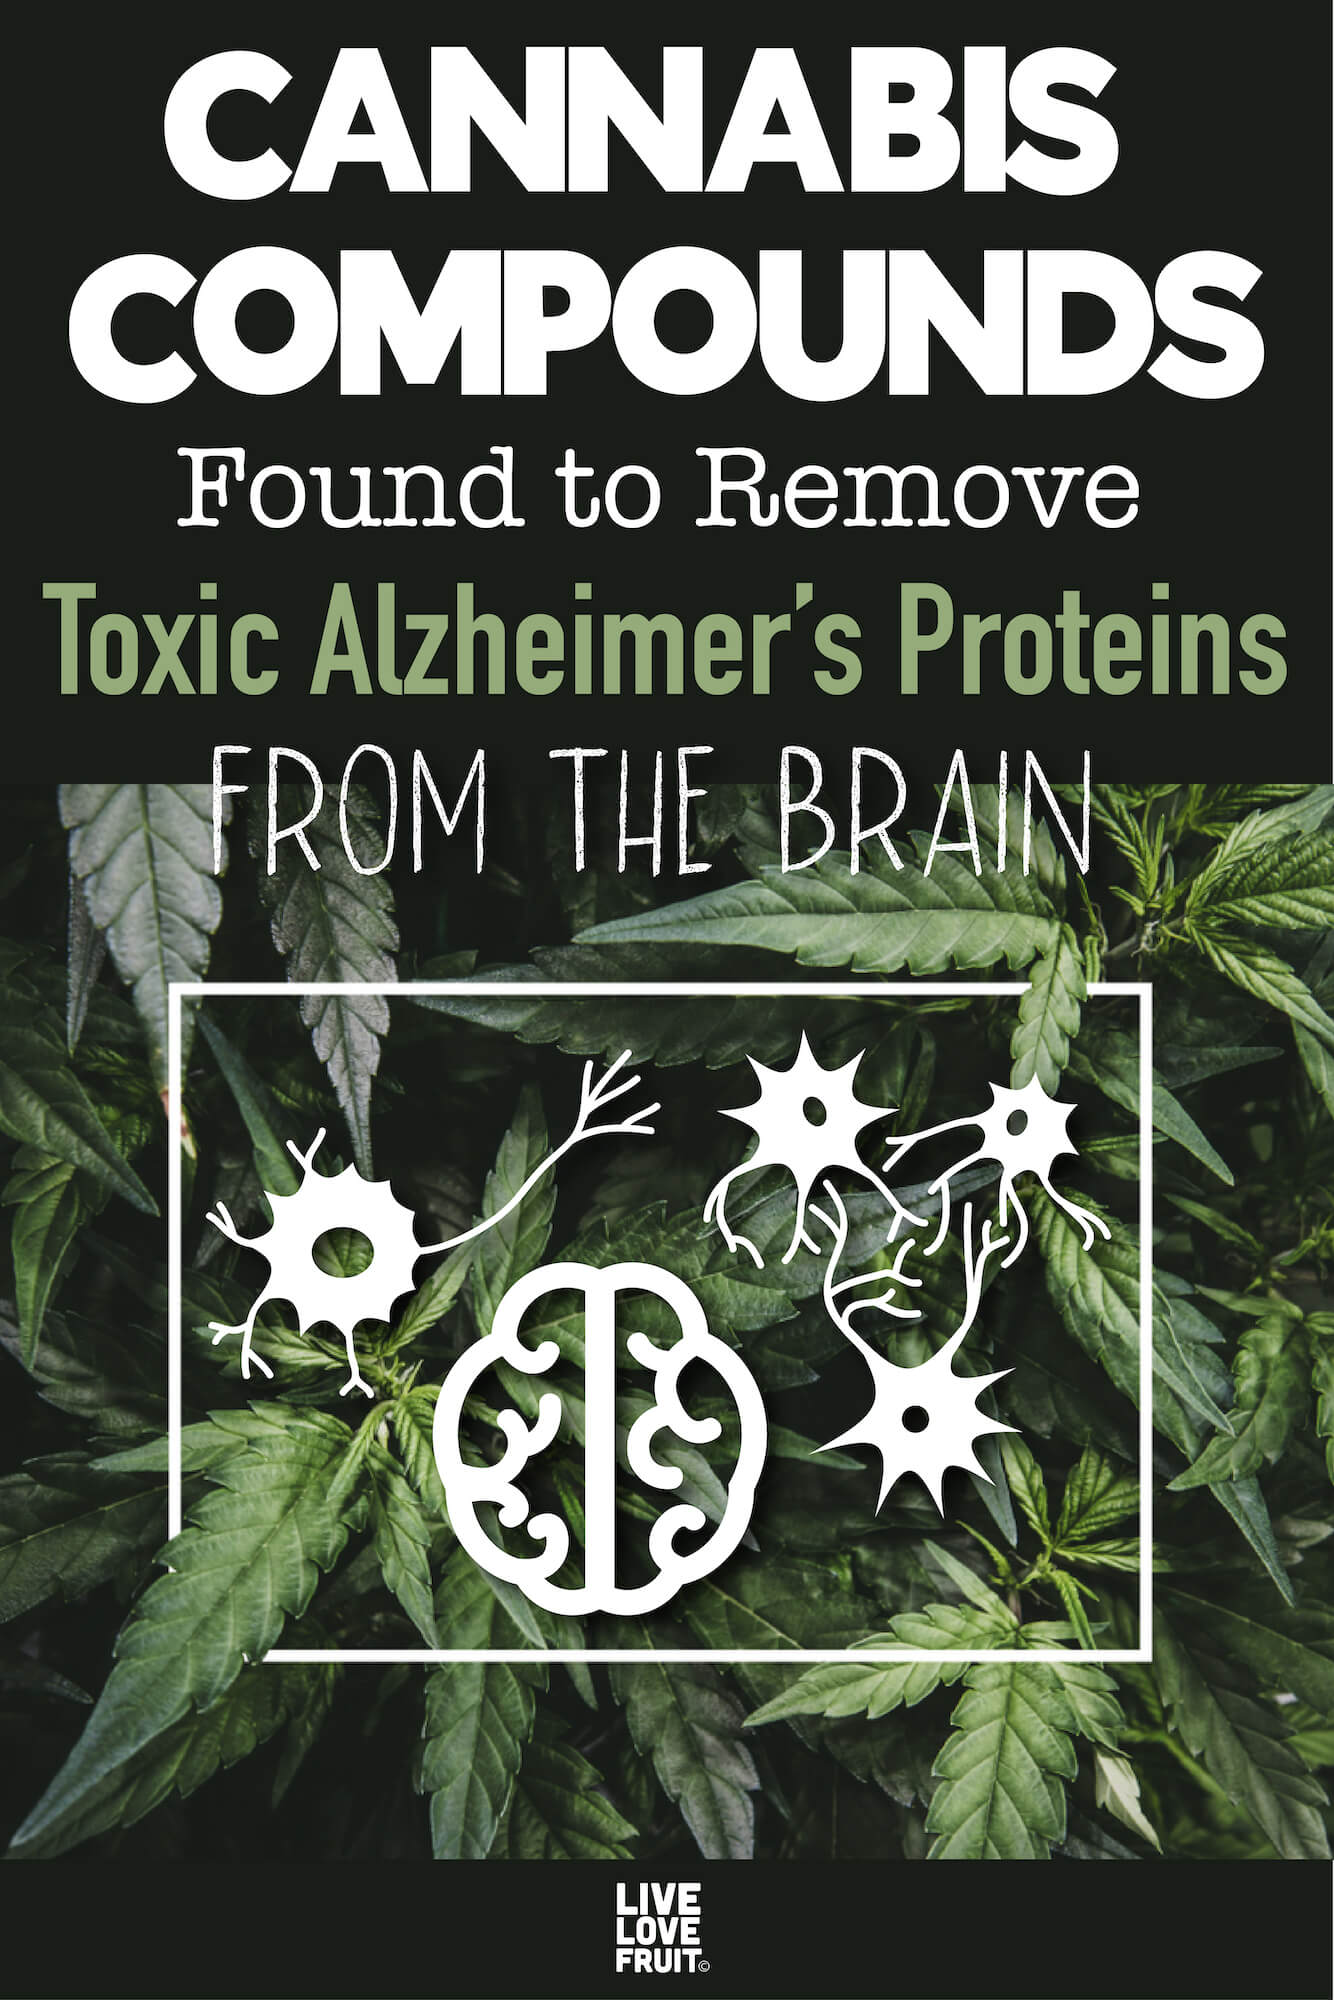 cannabis with white outline box in the middle with brain and neurons with text - cannabis compounds found to remove toxic alzheimer's proteins from the brain